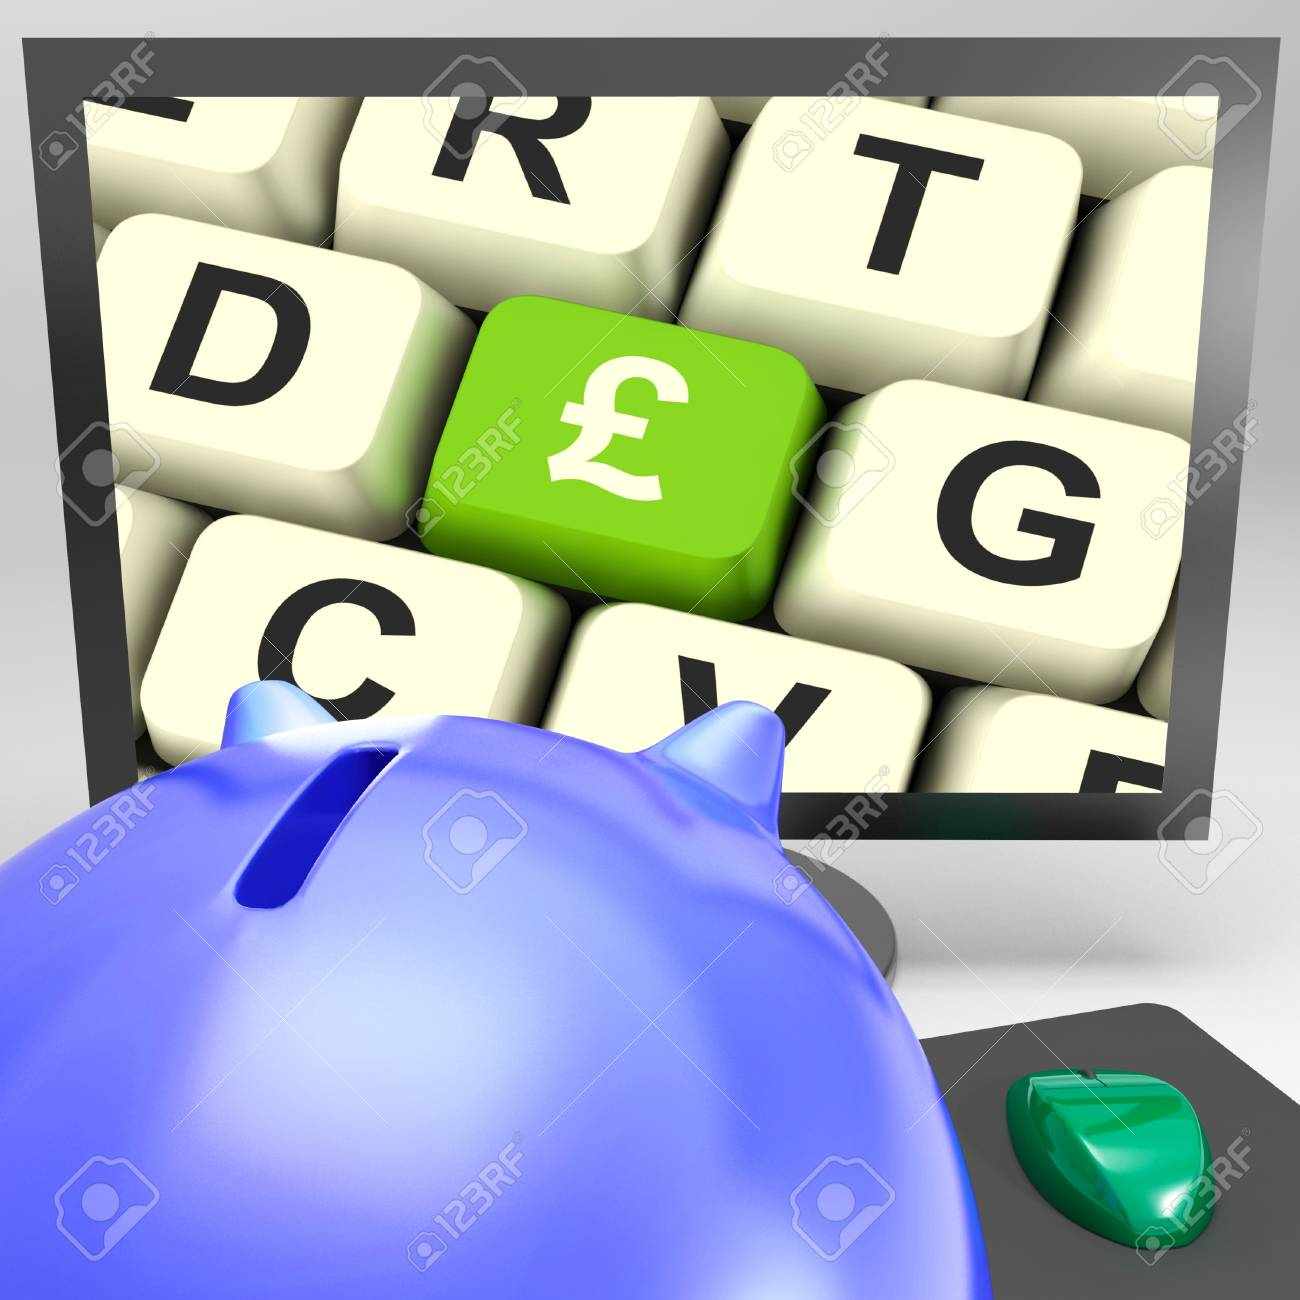 Pound Key On Monitor Showing Britain Prosperity And Finances Stock Photo - 18039779